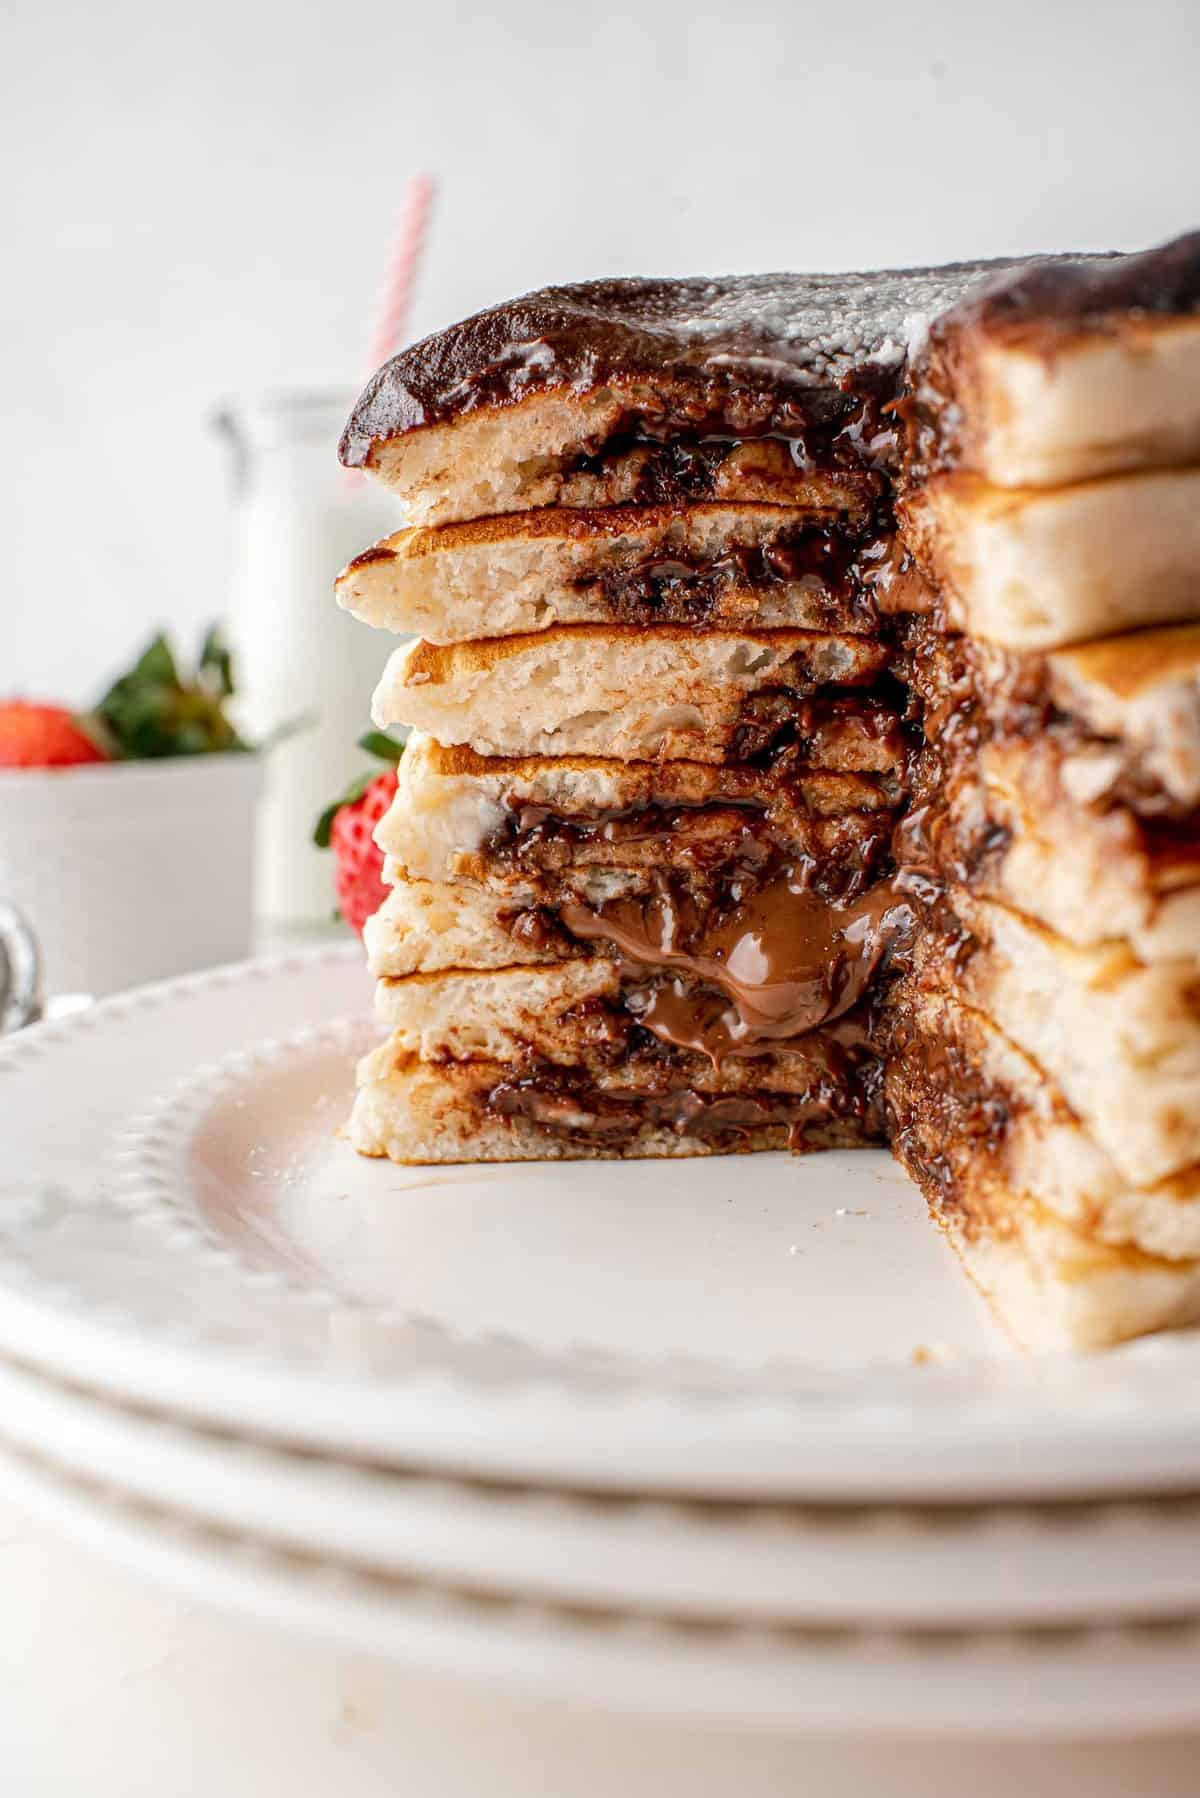 Stack of pancakes cut open to show nutella filling.